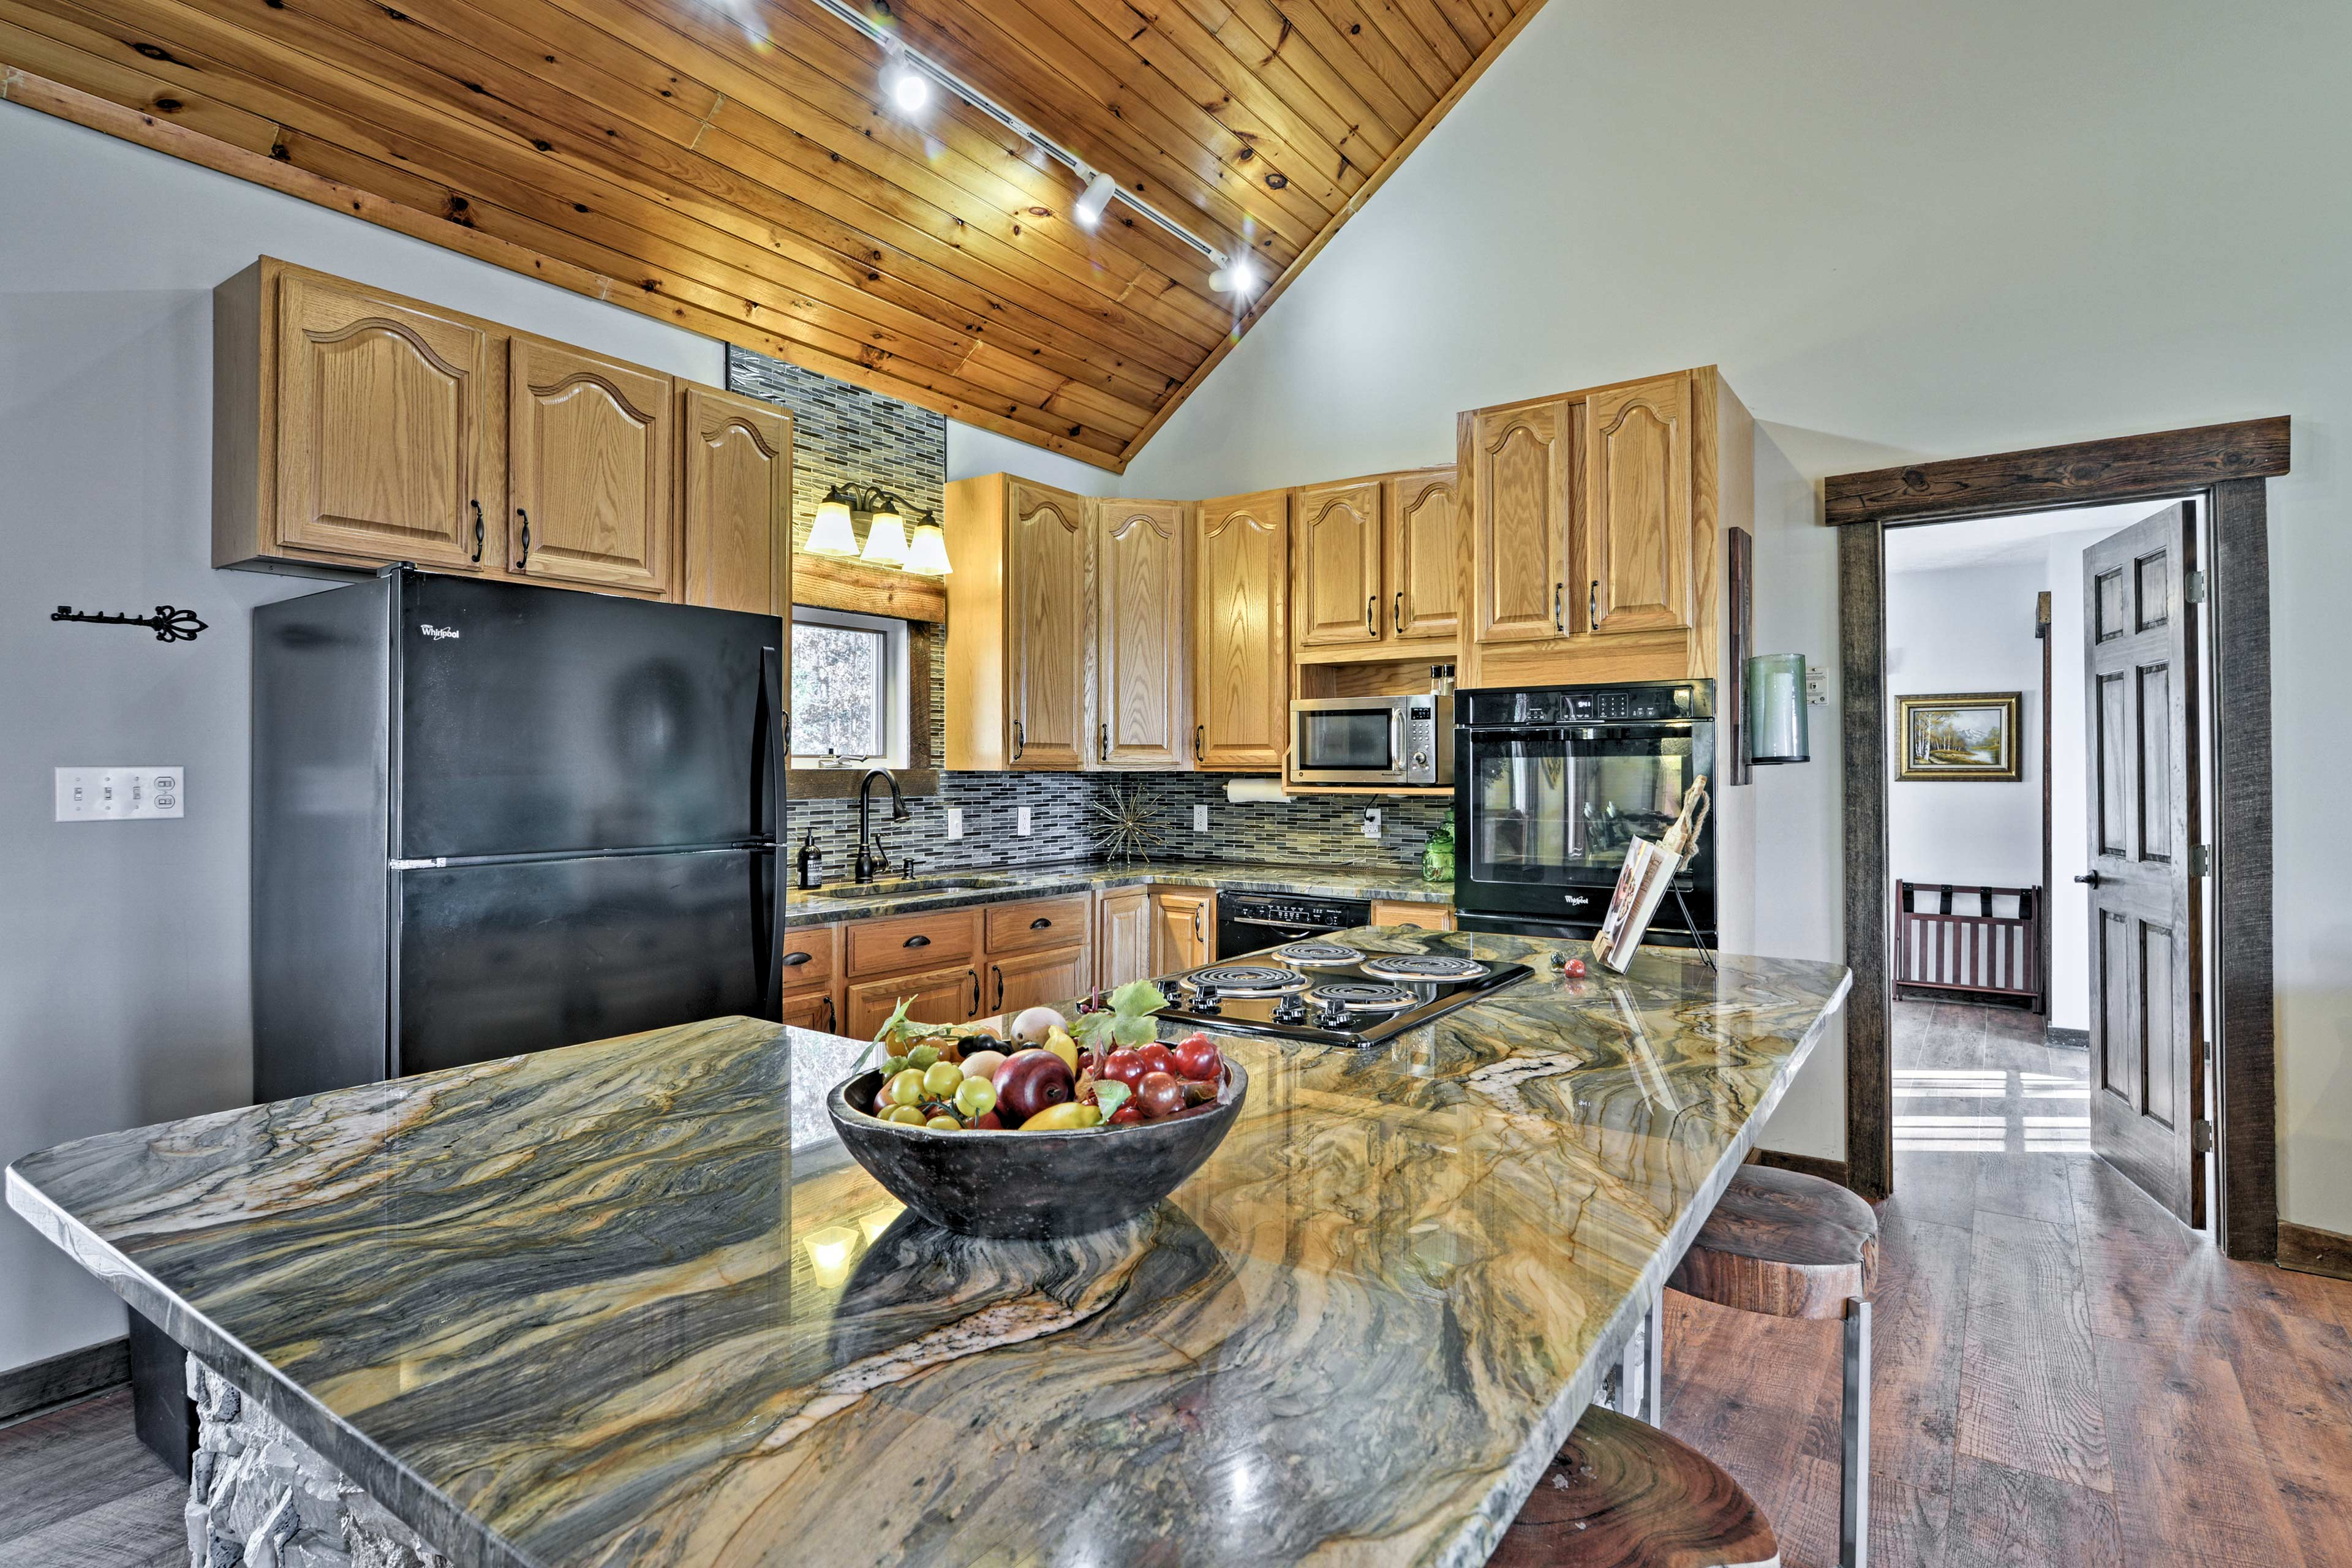 Prepare a 5-star feast in the fully equipped kitchen.